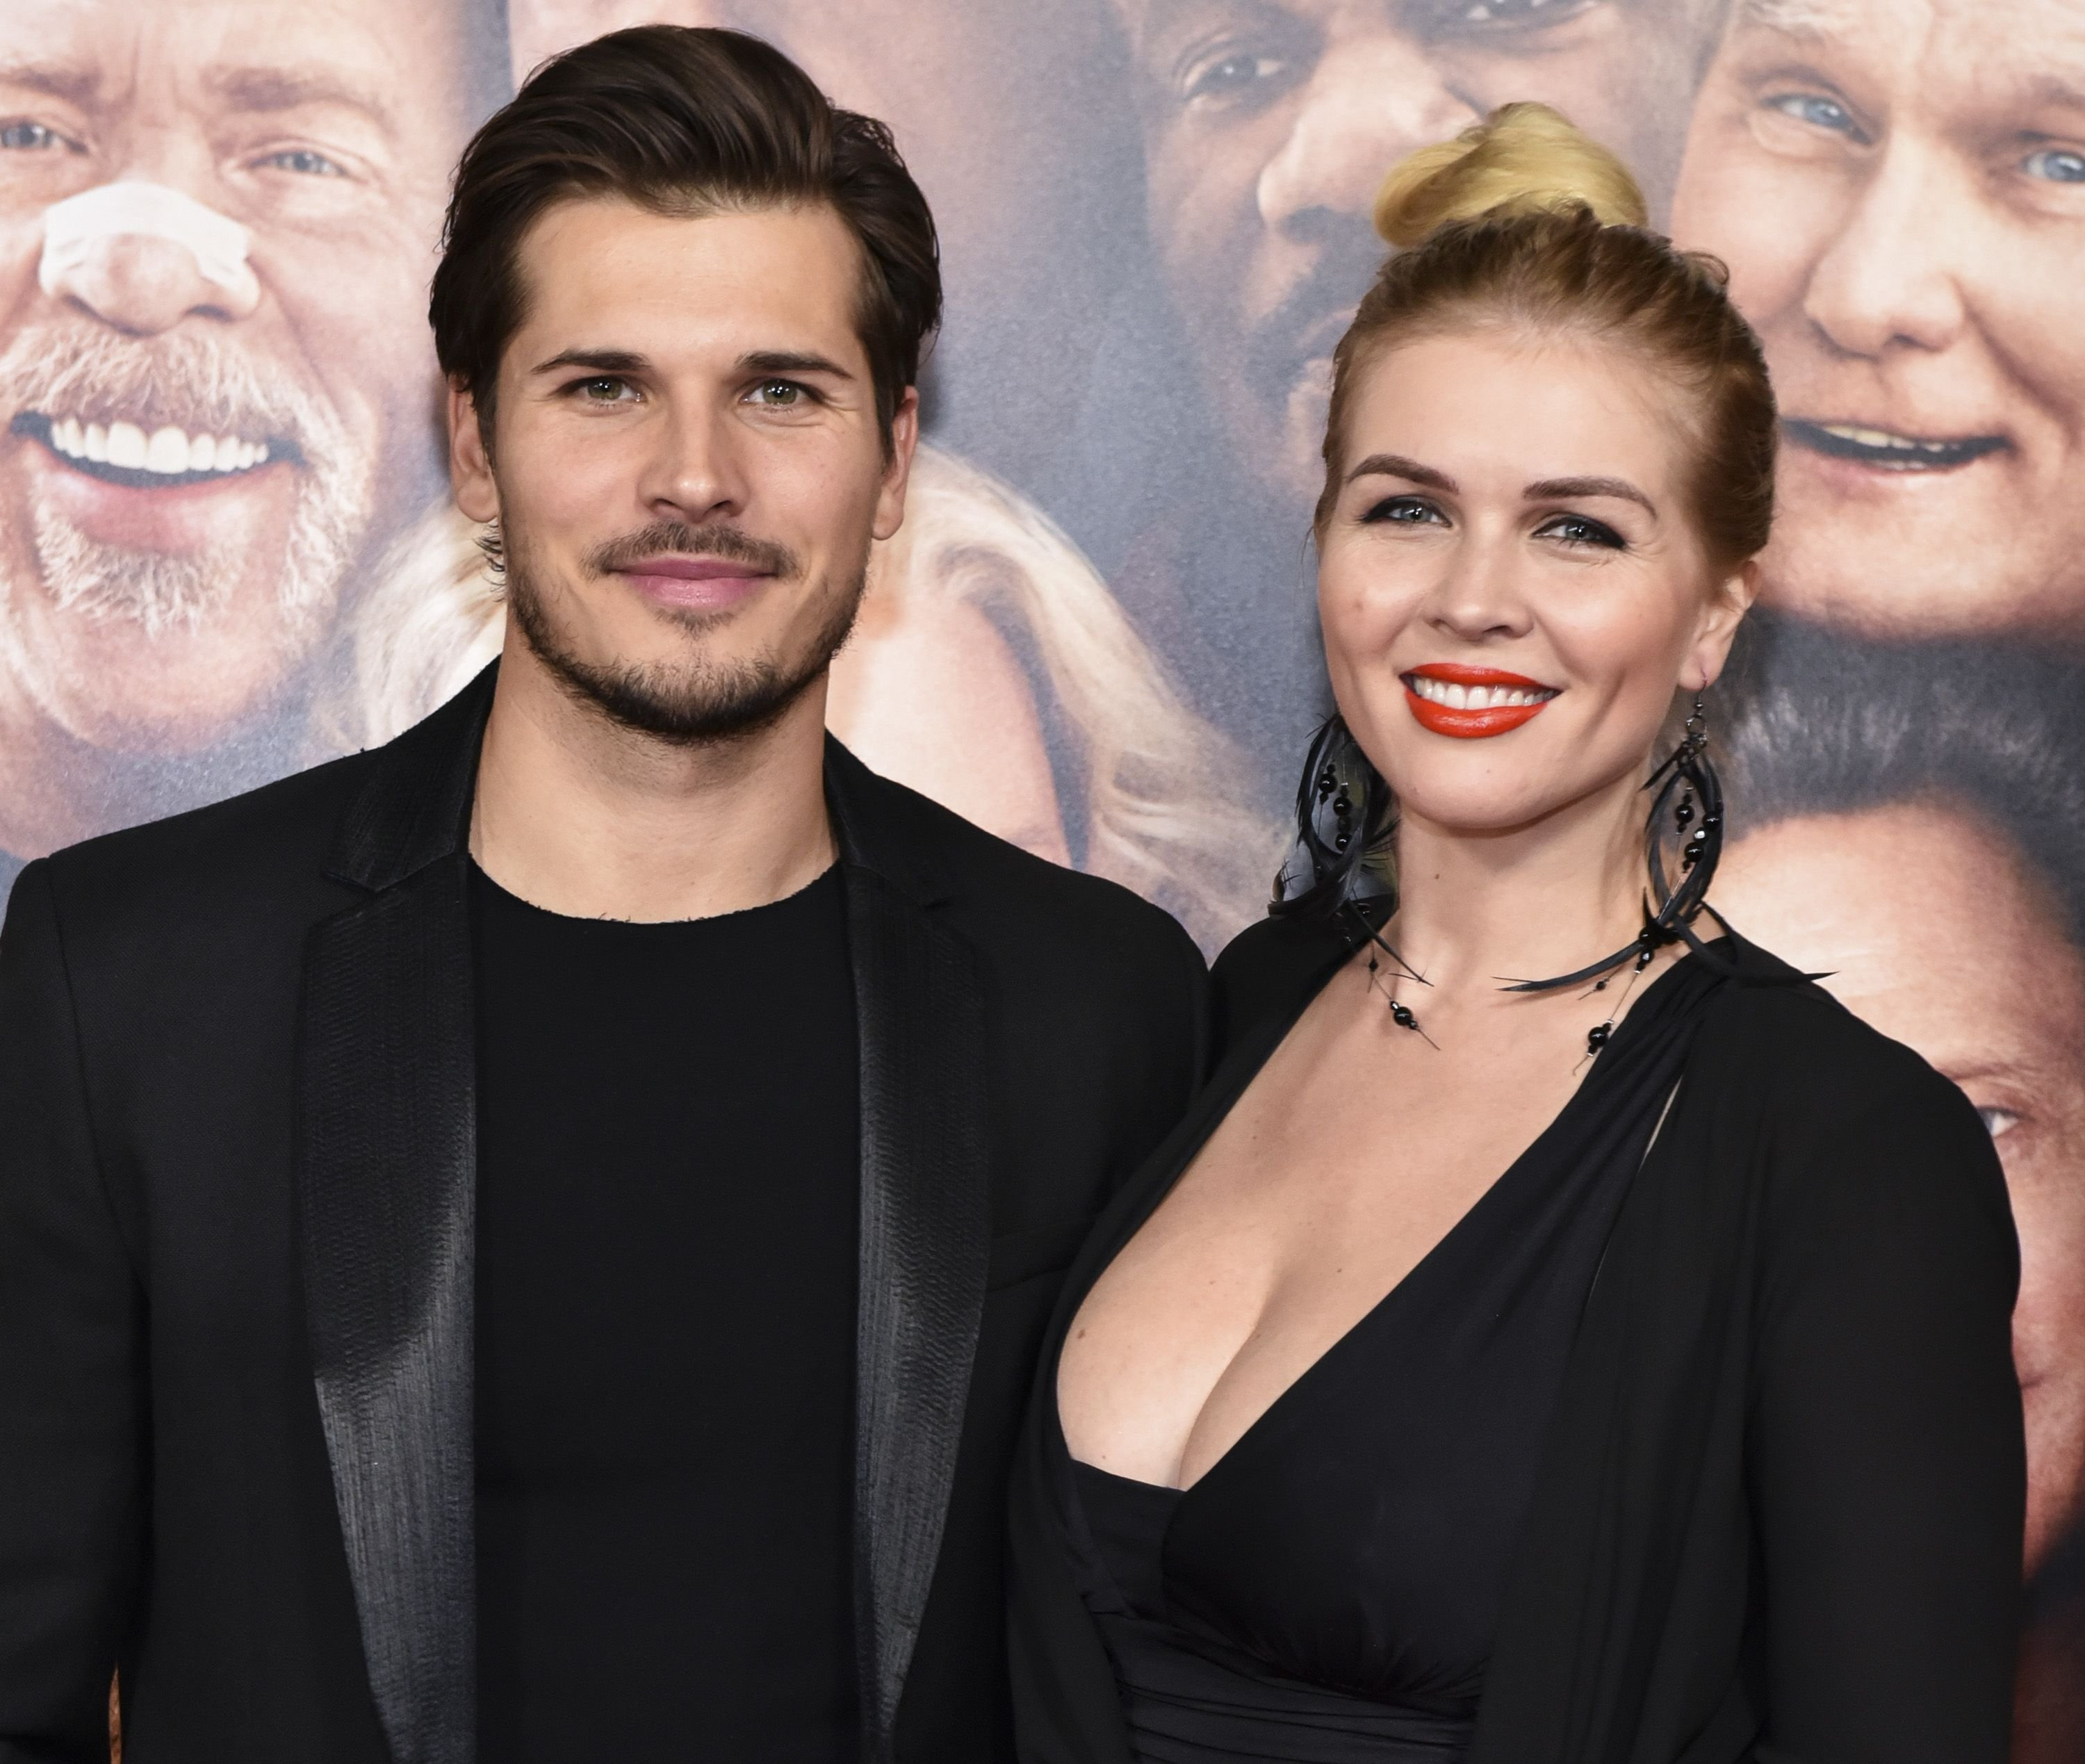 """Gleb Savchenko and Elena Samodanova at the premiere of """"Father Figures"""" at TCL Chinese Theatre on December 13, 2017 